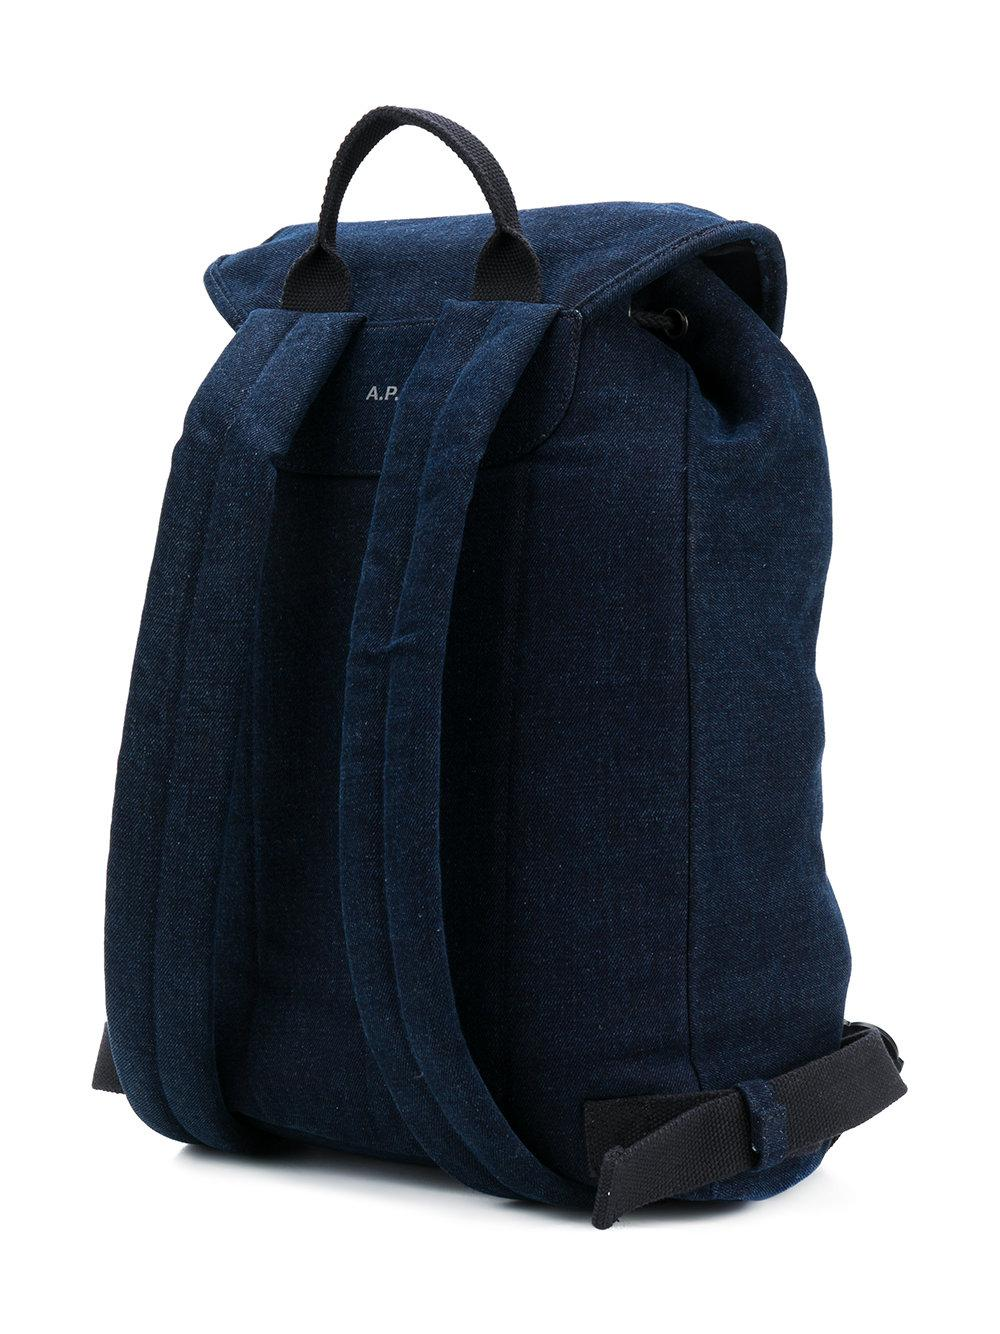 A.P.C. Cotton Chambray Backpack in Blue for Men